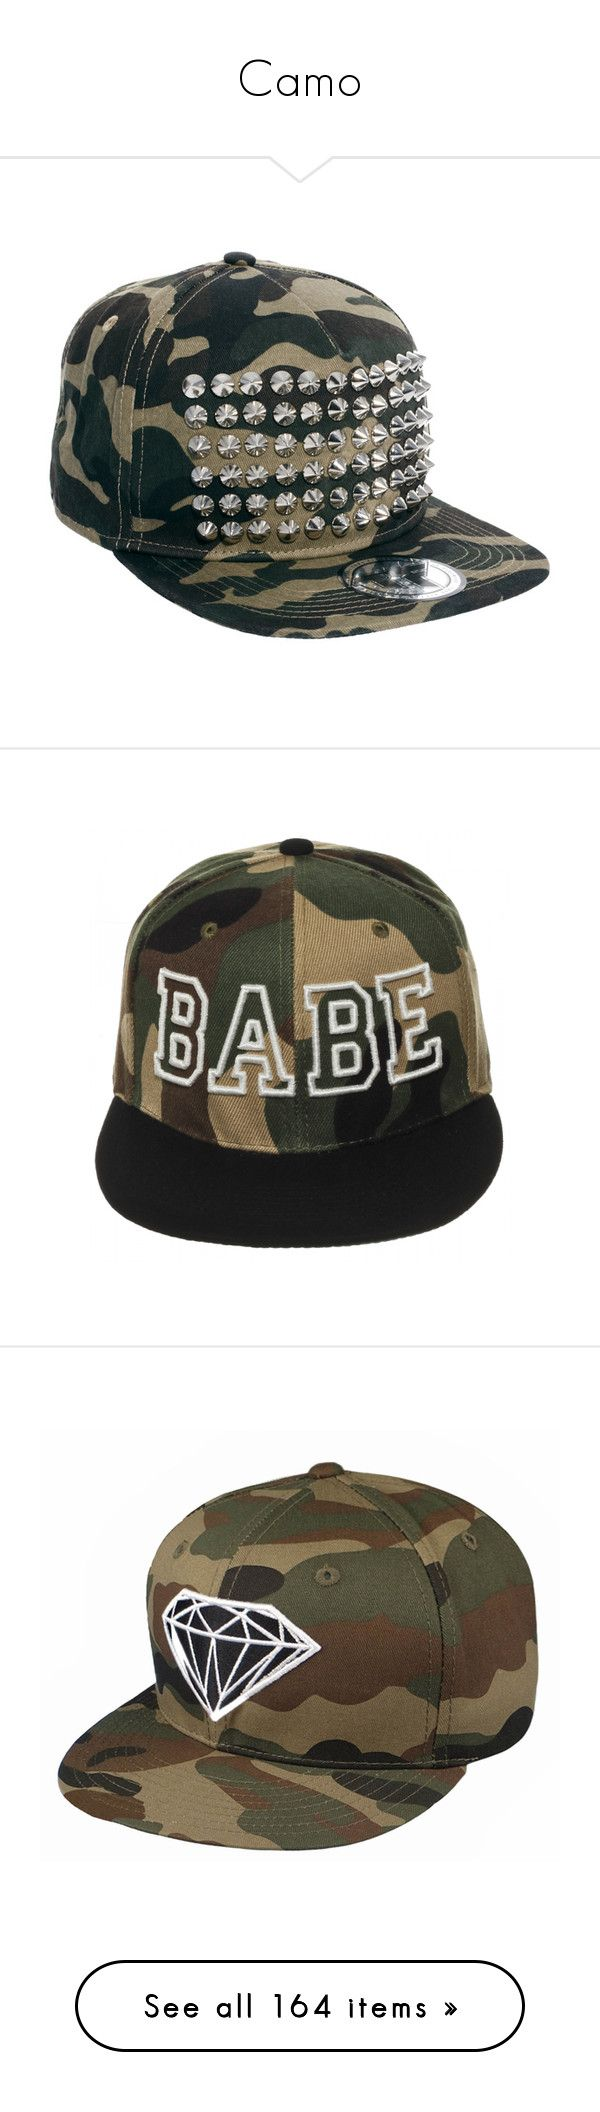 """Camo"" by robinnnnnnn ❤ liked on Polyvore featuring accessories, hats, snapbacks, camouflage, flat bill hats, flat bill snapback hats, camouflage snapbacks, snapback cap, crown cap hats and camo"